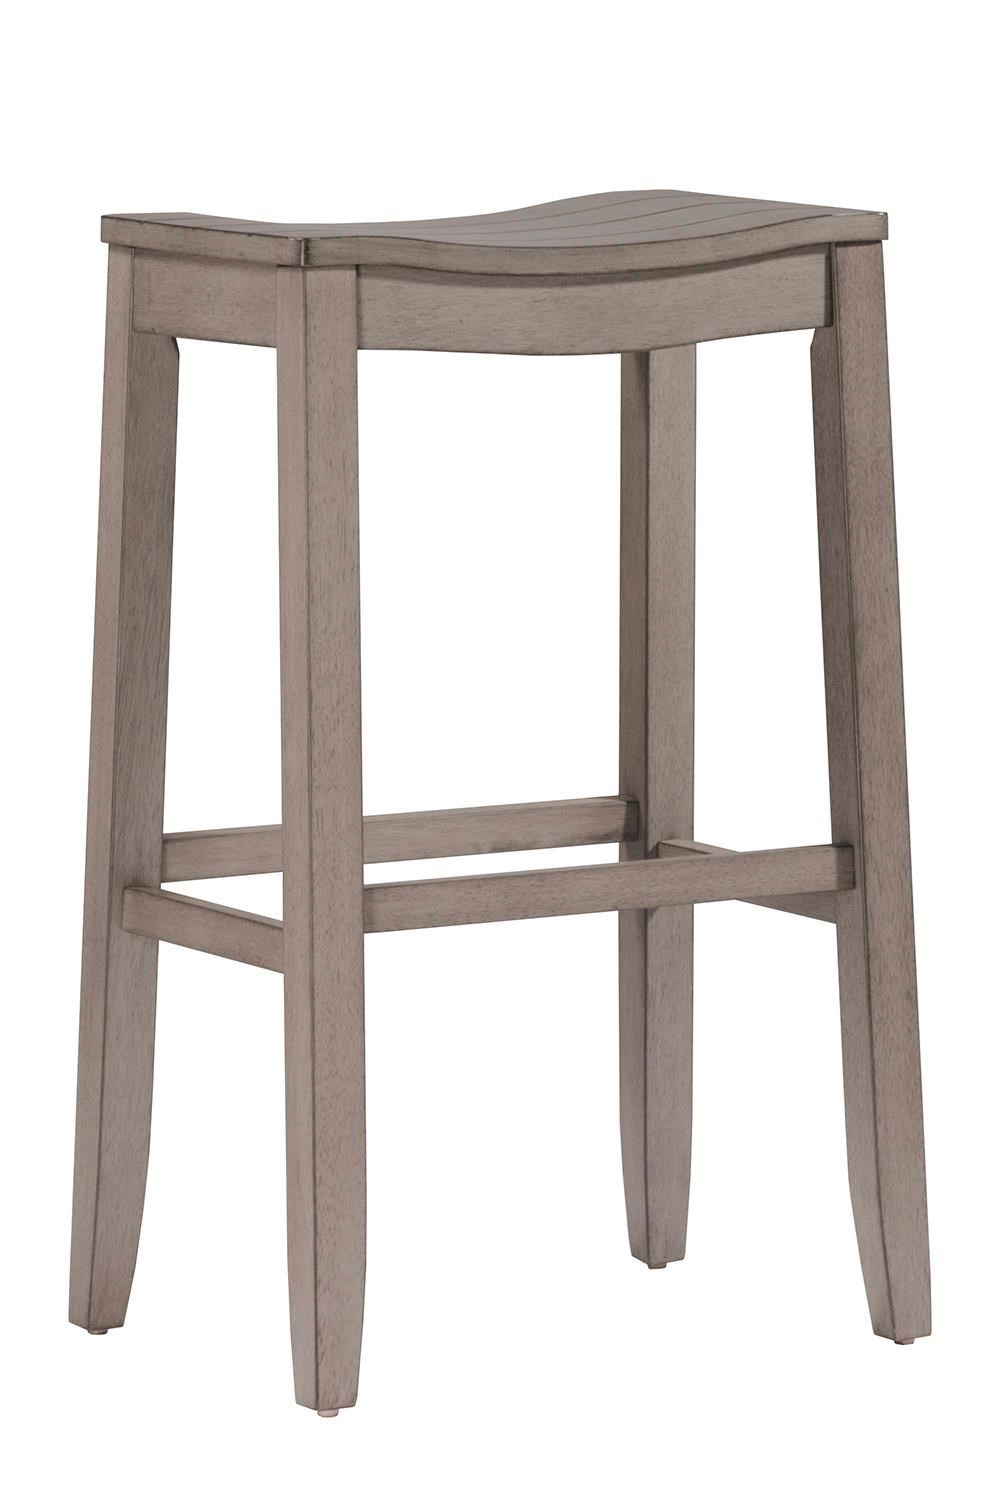 "Hillsdale 4583 24"" Bar stool - Item Number: 4583-24"